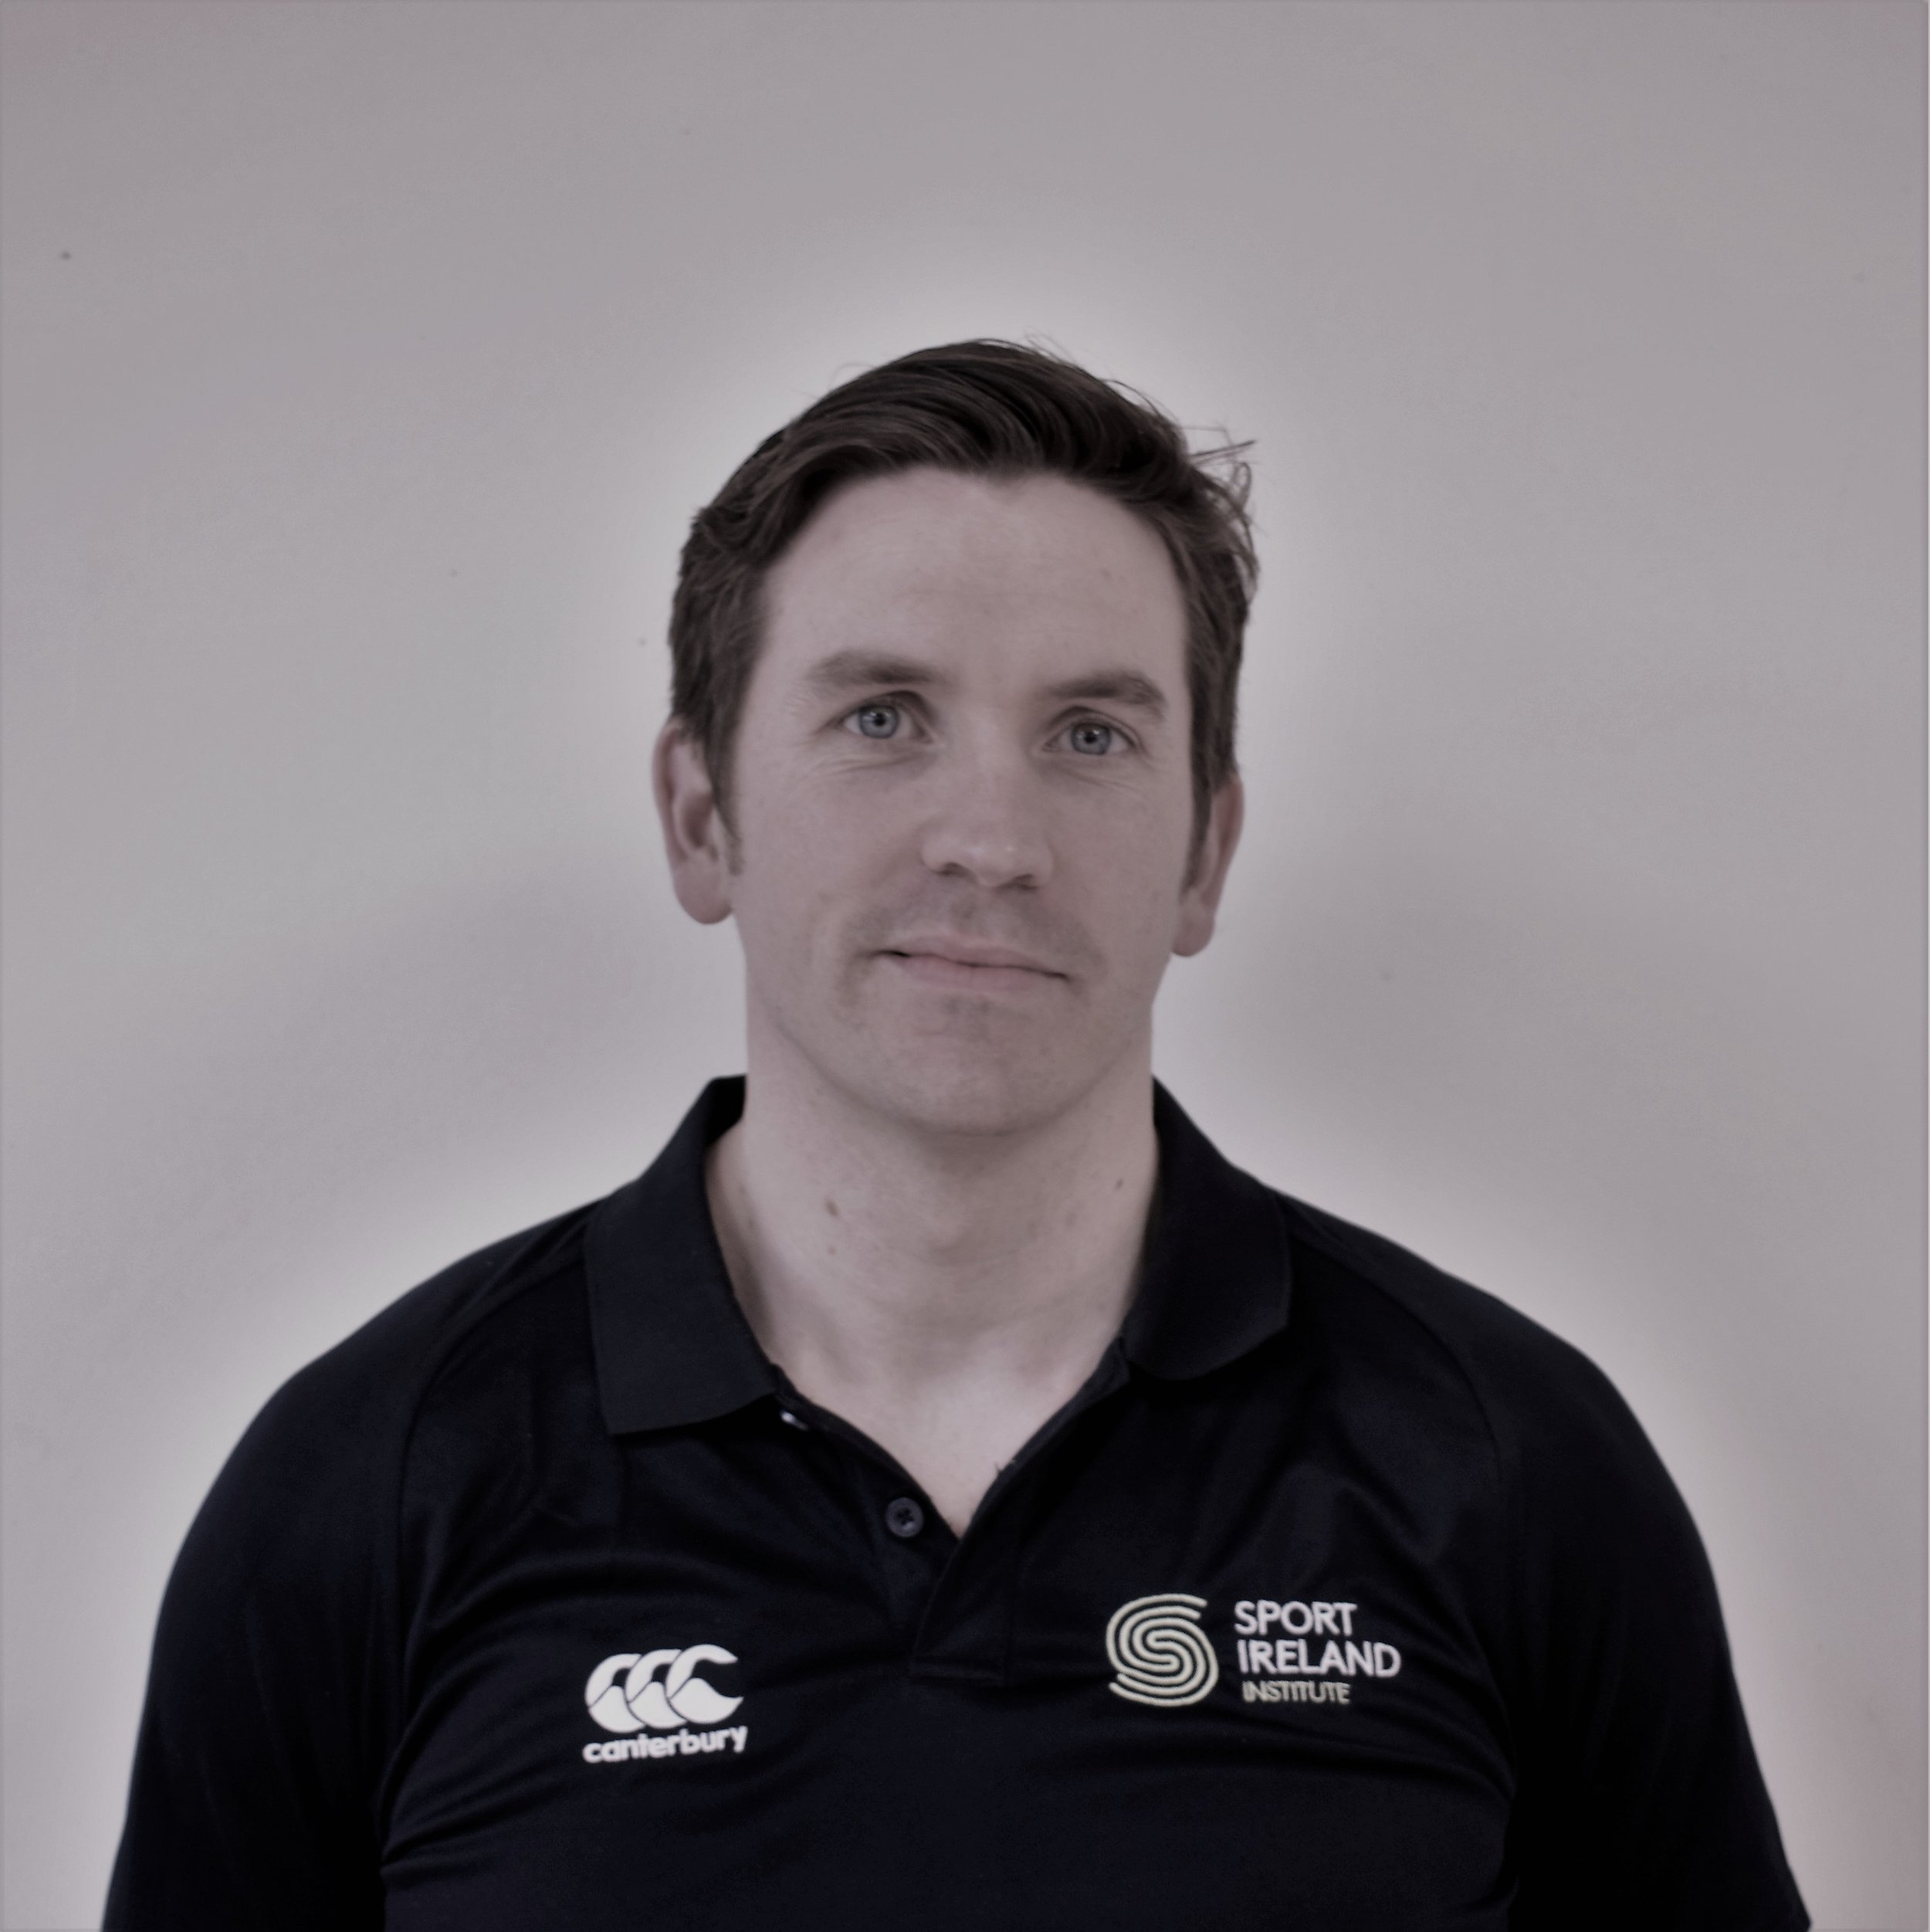 Eamonn Flanagan, Head of Strength & Conditioning